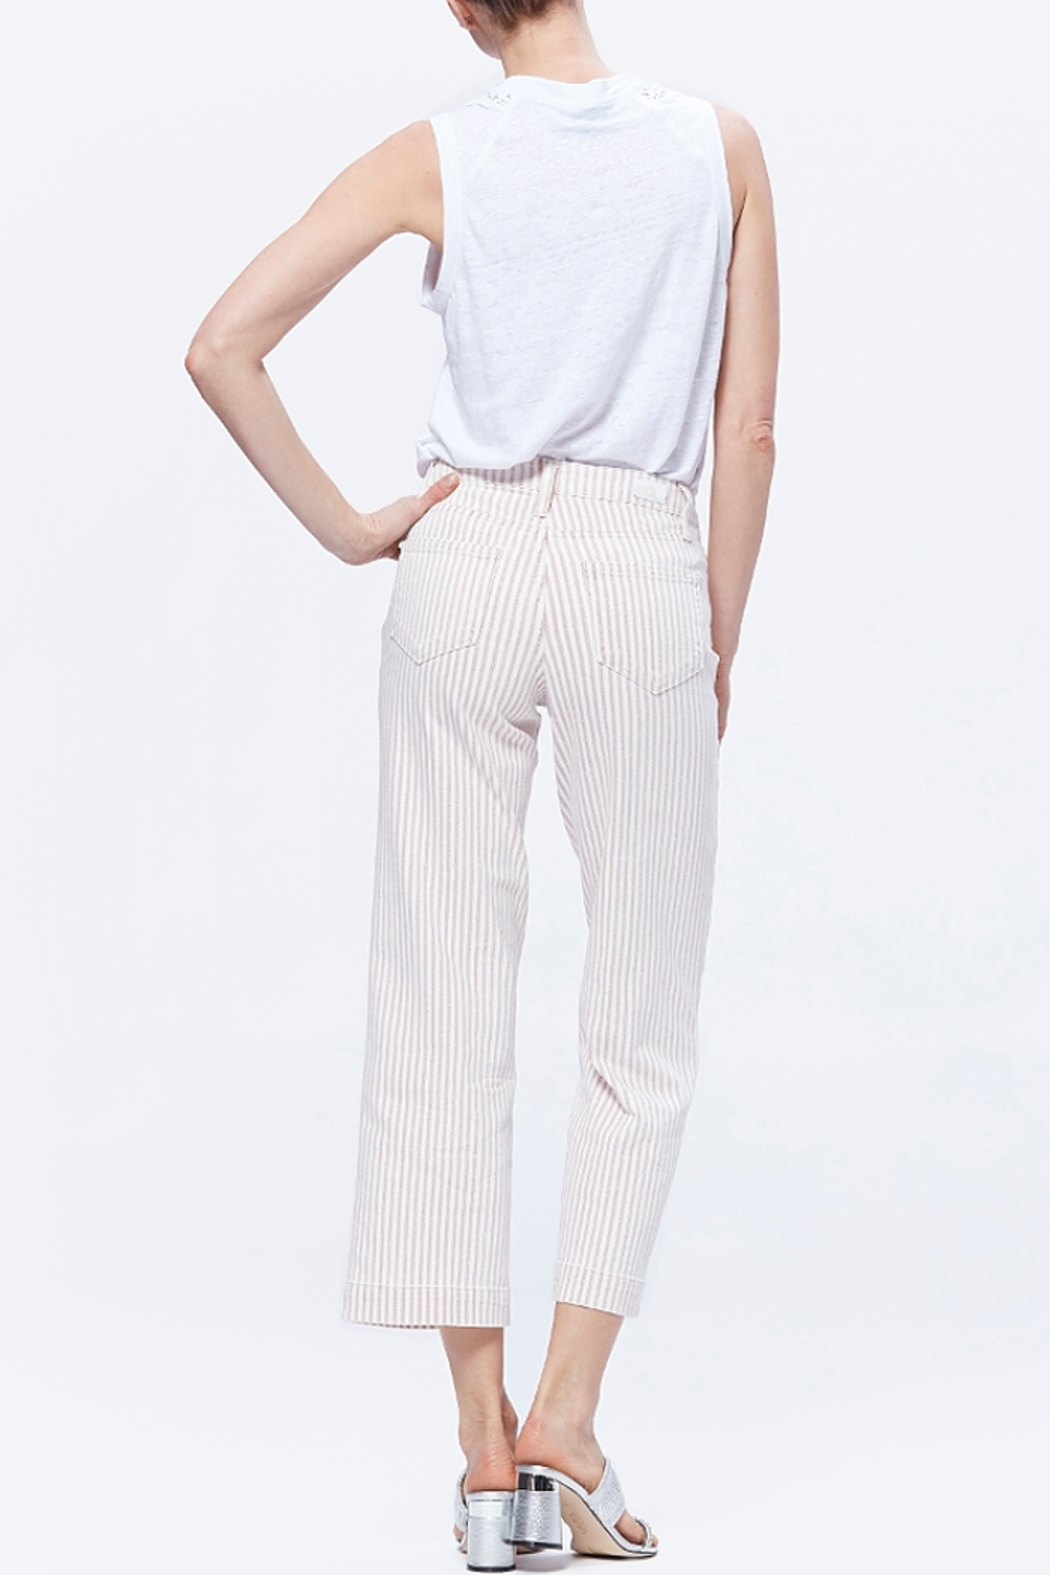 Paige Nellie Culotte - Blossom Pink Stripe - Back Cropped Image